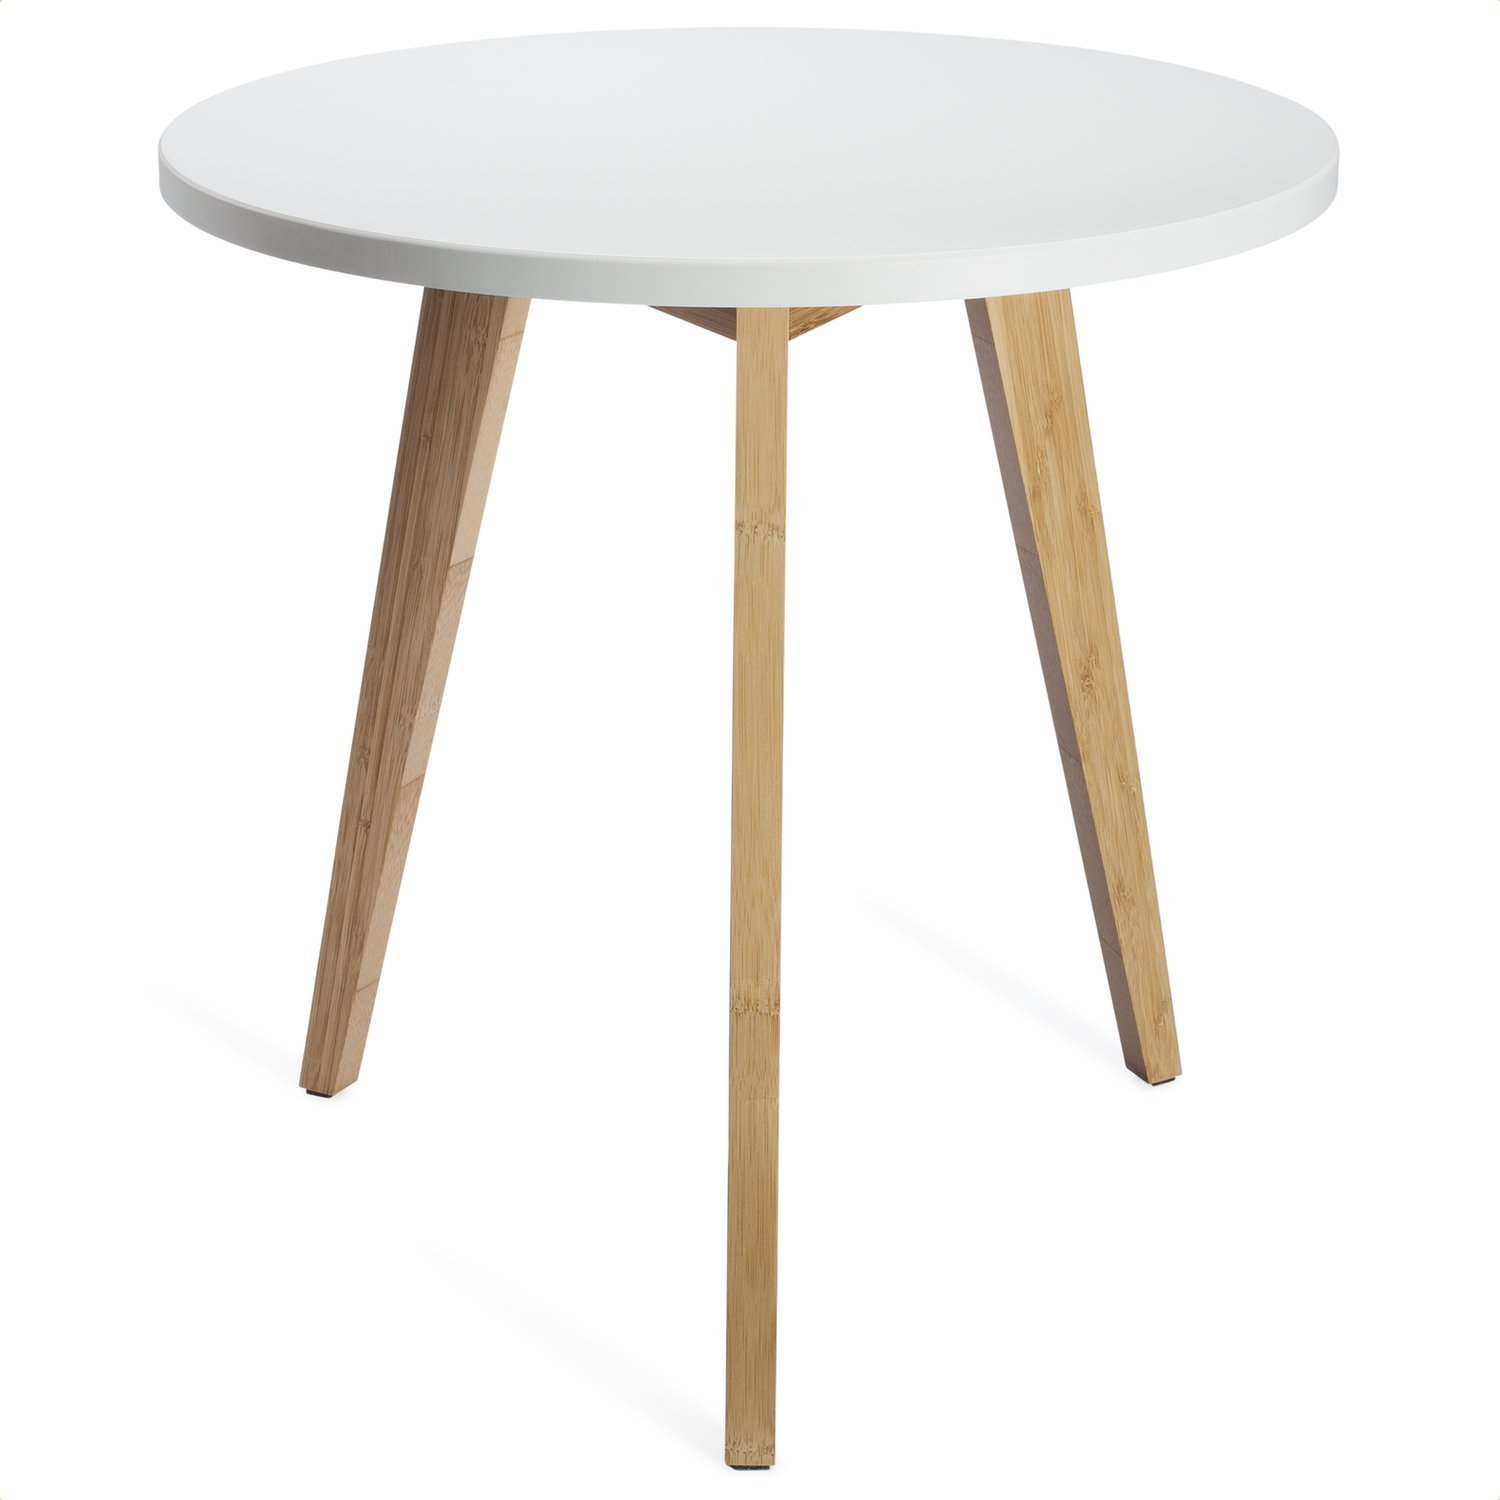 stndrd mid century modern end table perfect bedside faux wood accent nightstand living room side white round tabletop bamboo legs pack kitchen dining foyer lamps brown metal